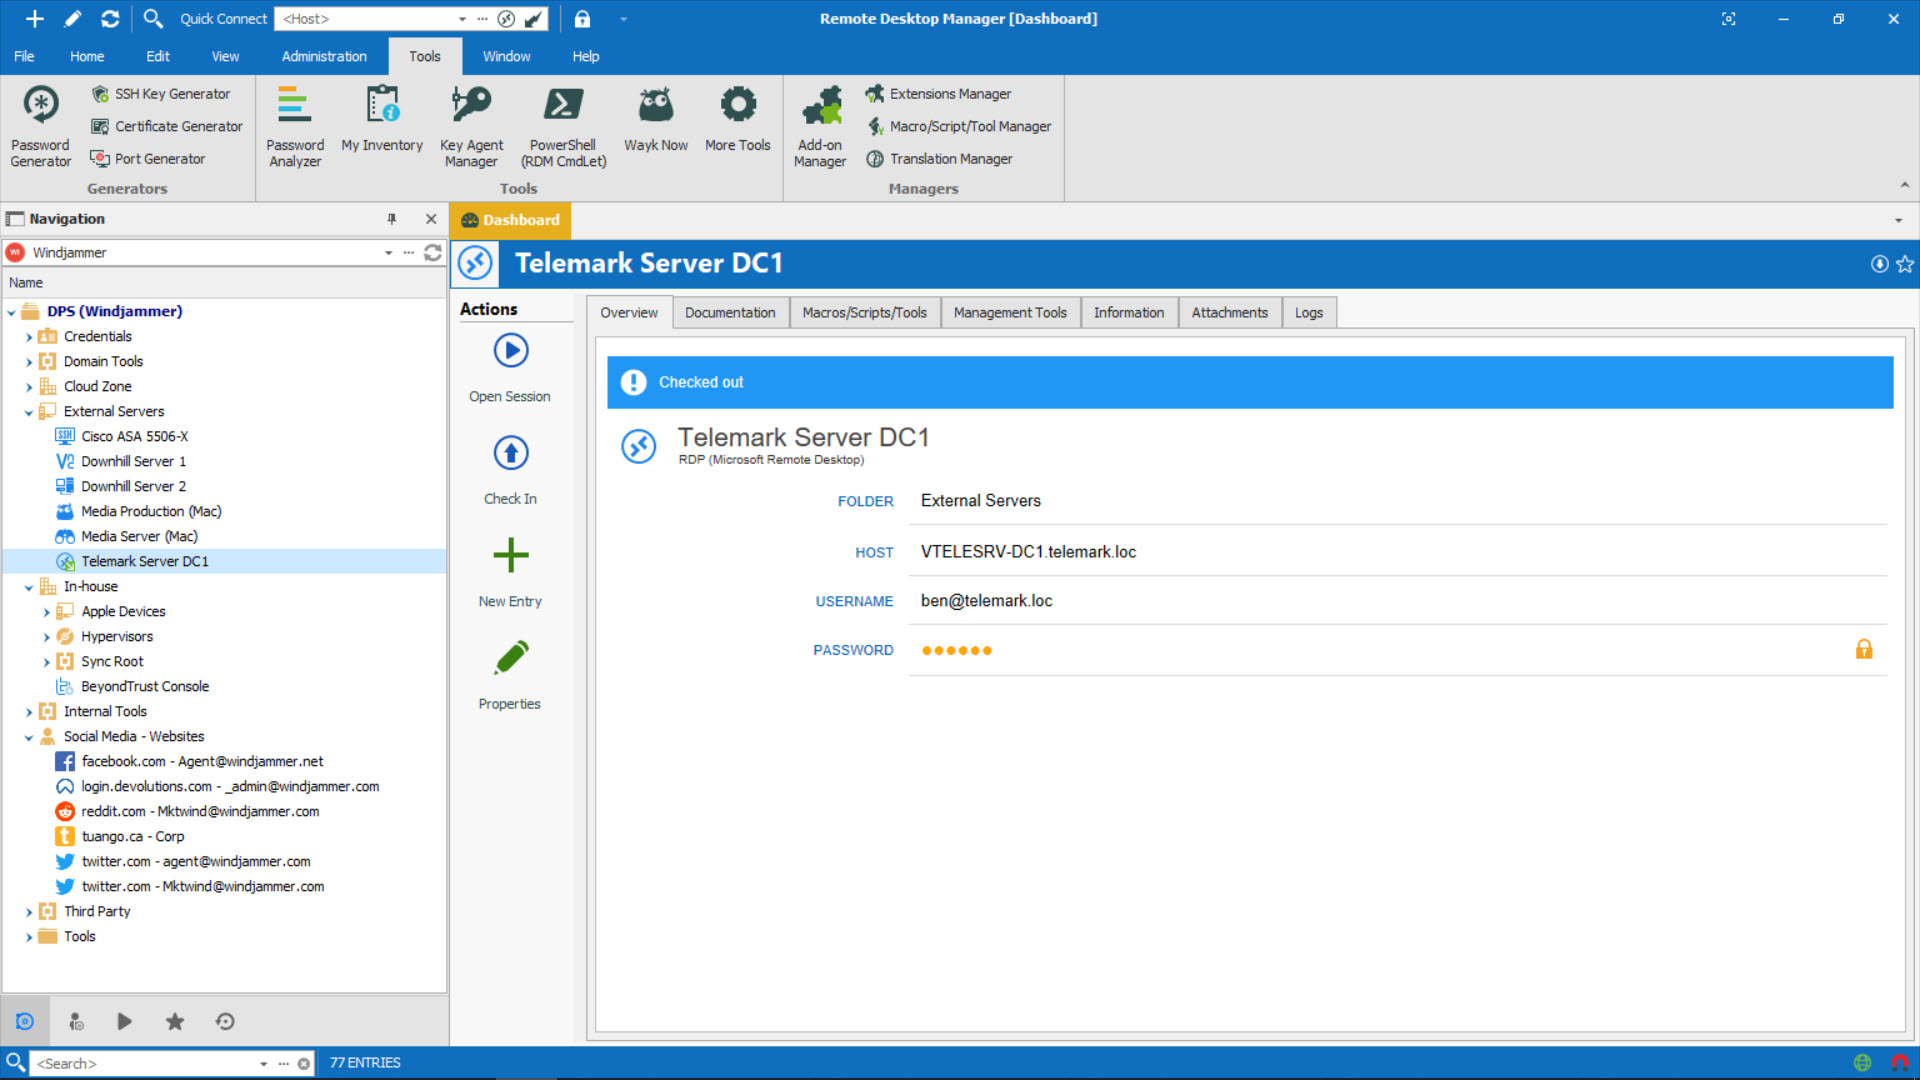 Remote Desktop Manager Main Screen